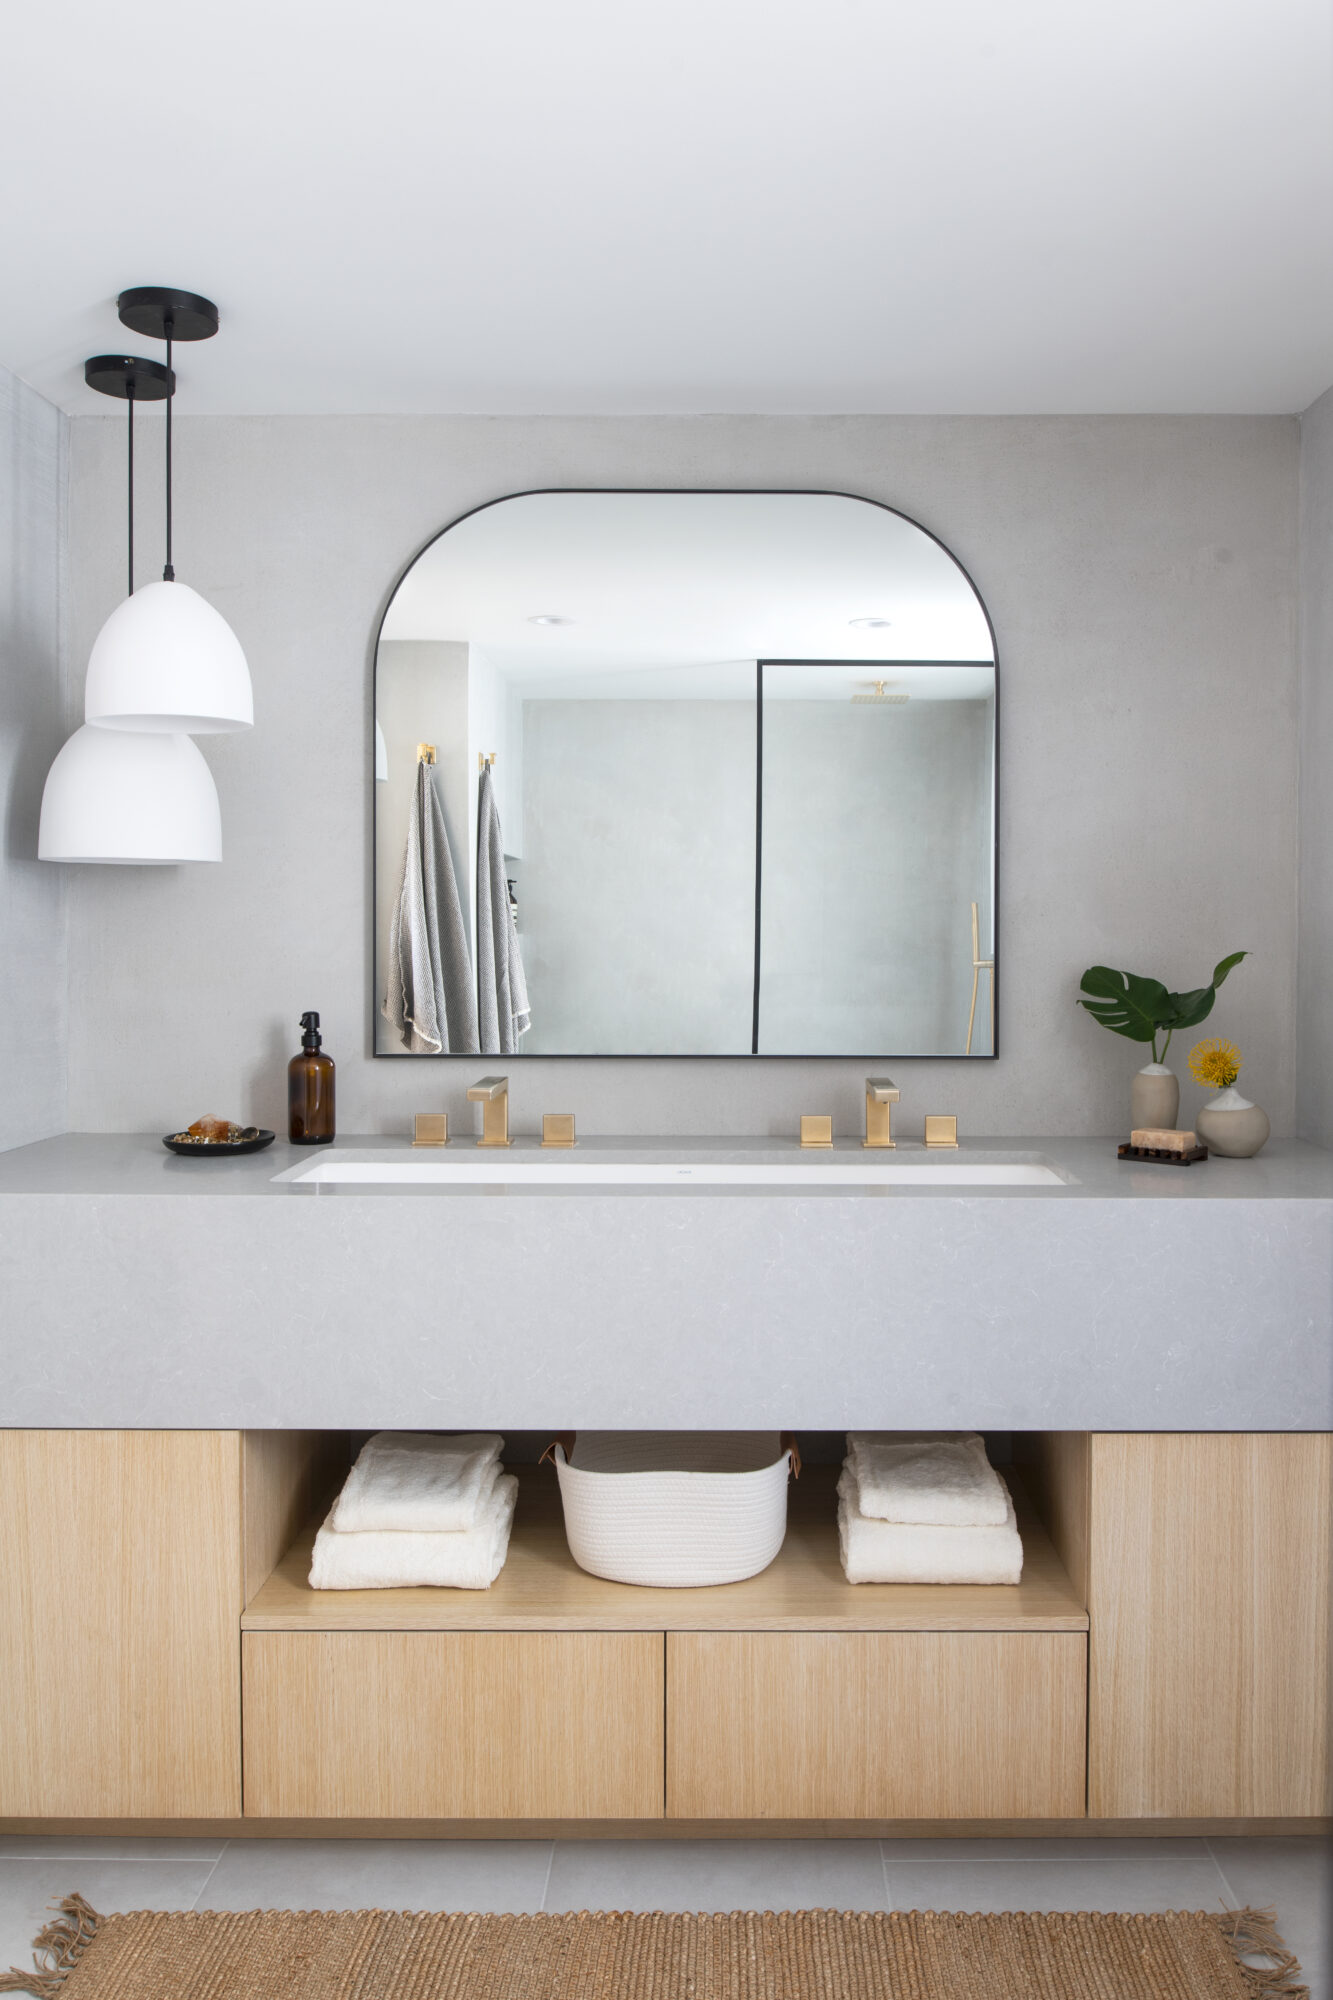 2022 Bathroom Trends Designers Can't Get Enough Of